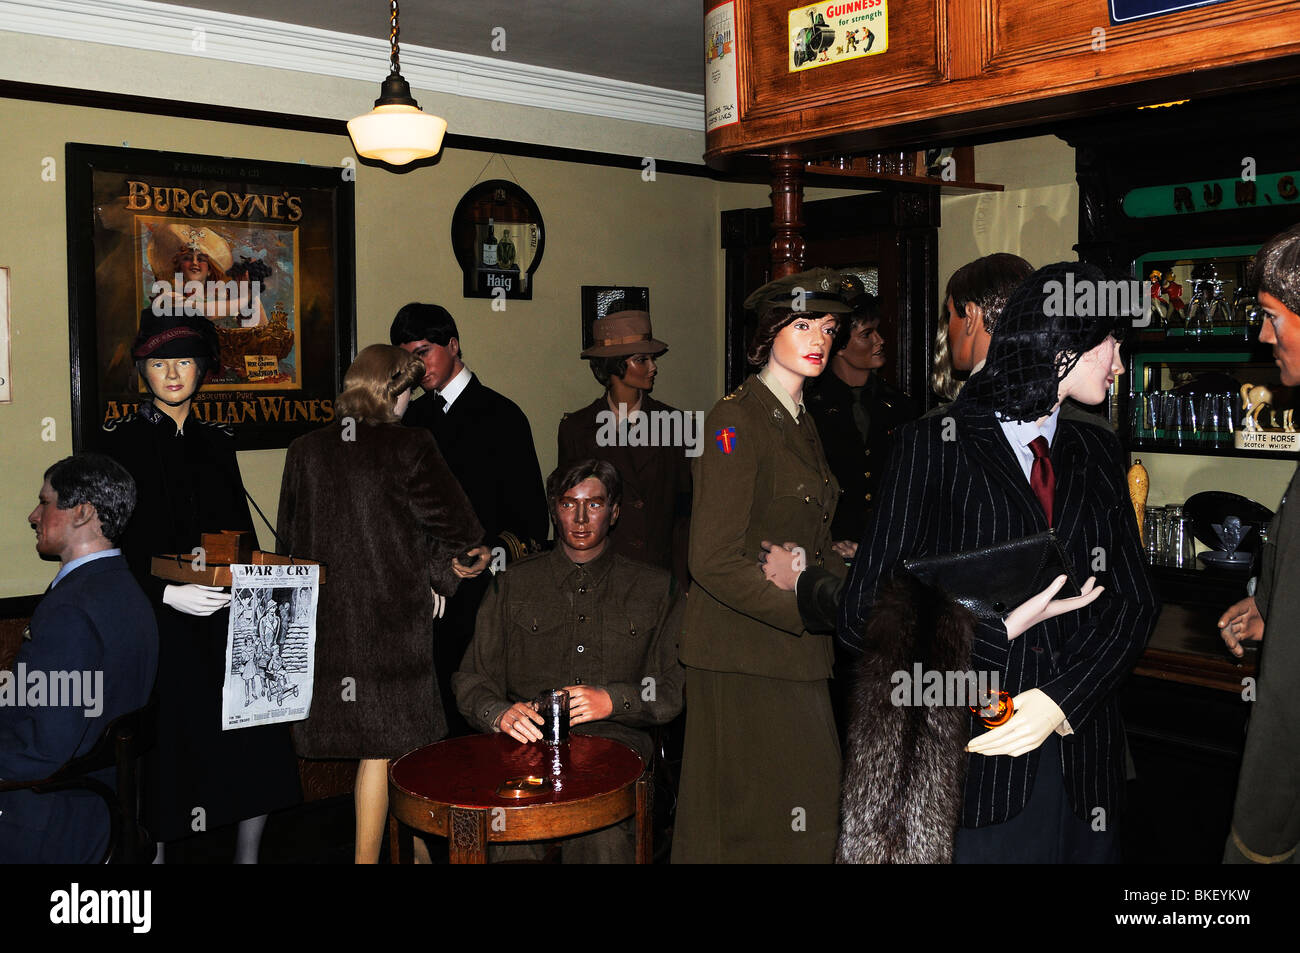 a second world war pub scene at flambards theme park at helston in cornwall, uk - Stock Image